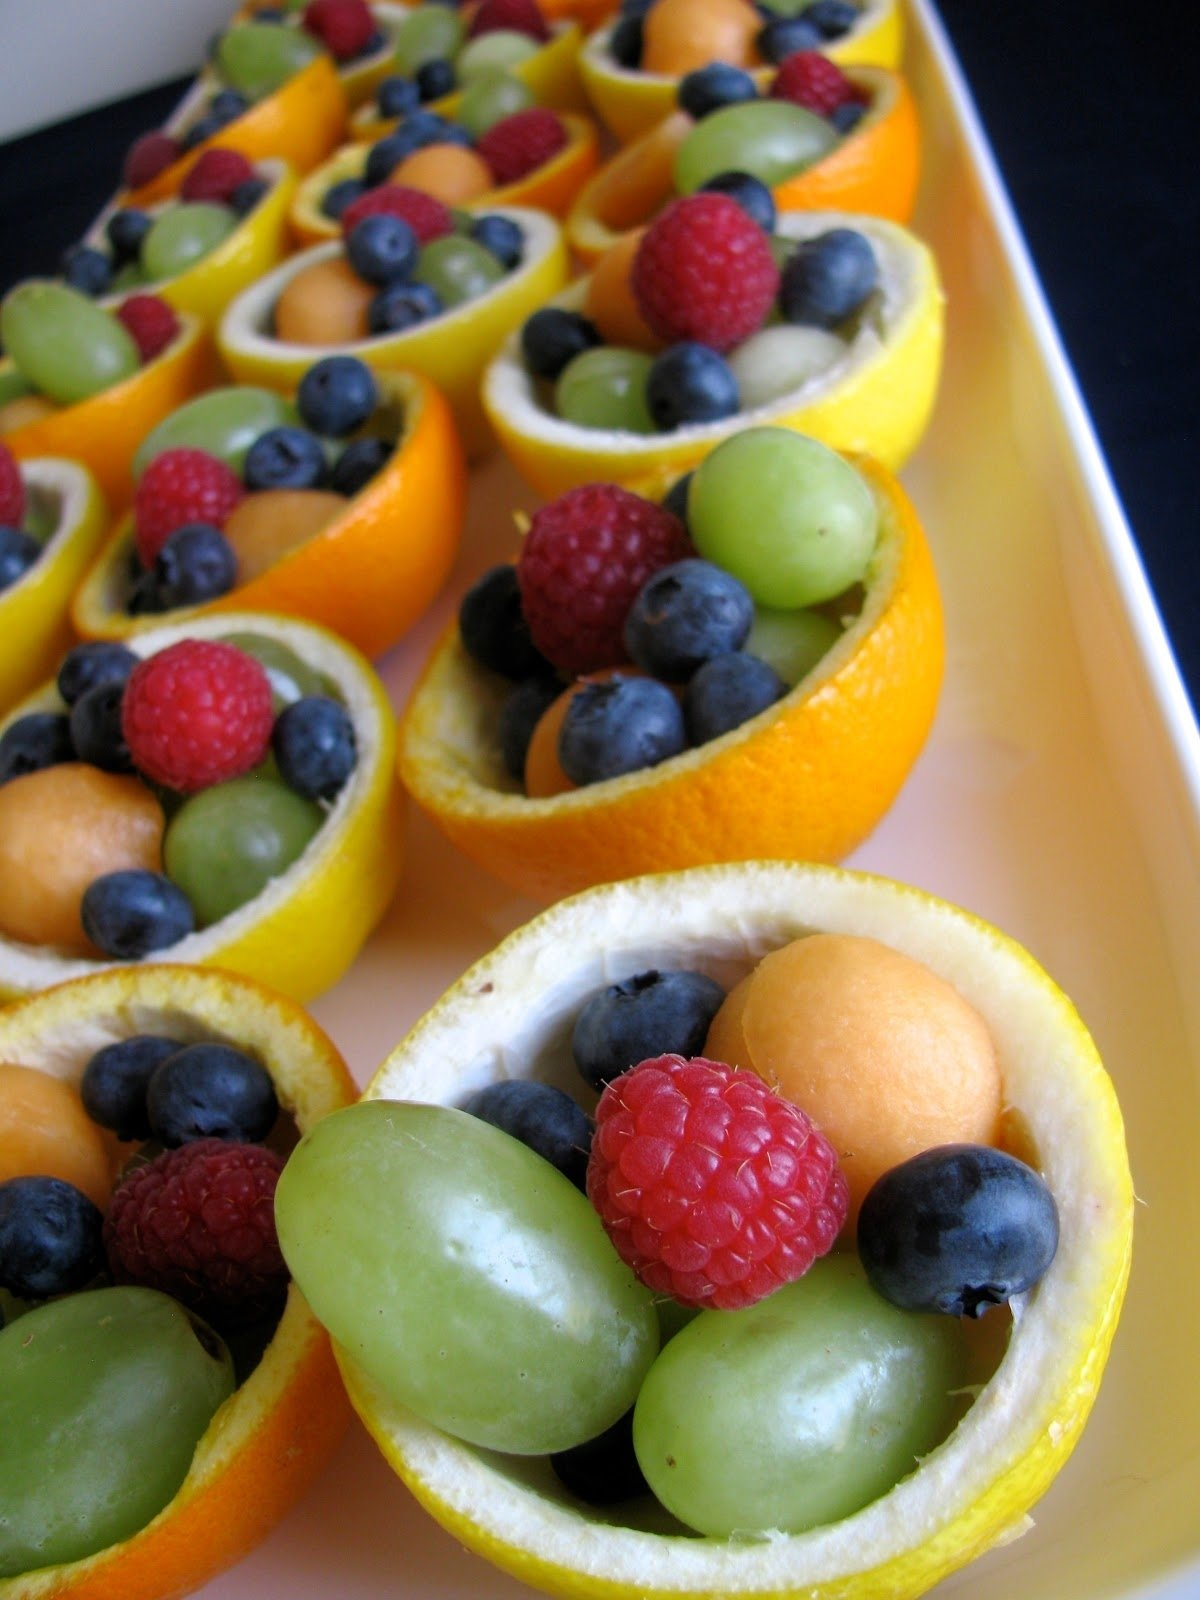 10 Beautiful Fruit Ideas For Baby Shower fantastic baby shower fruit ideas cute salad for basket pinterest 2020